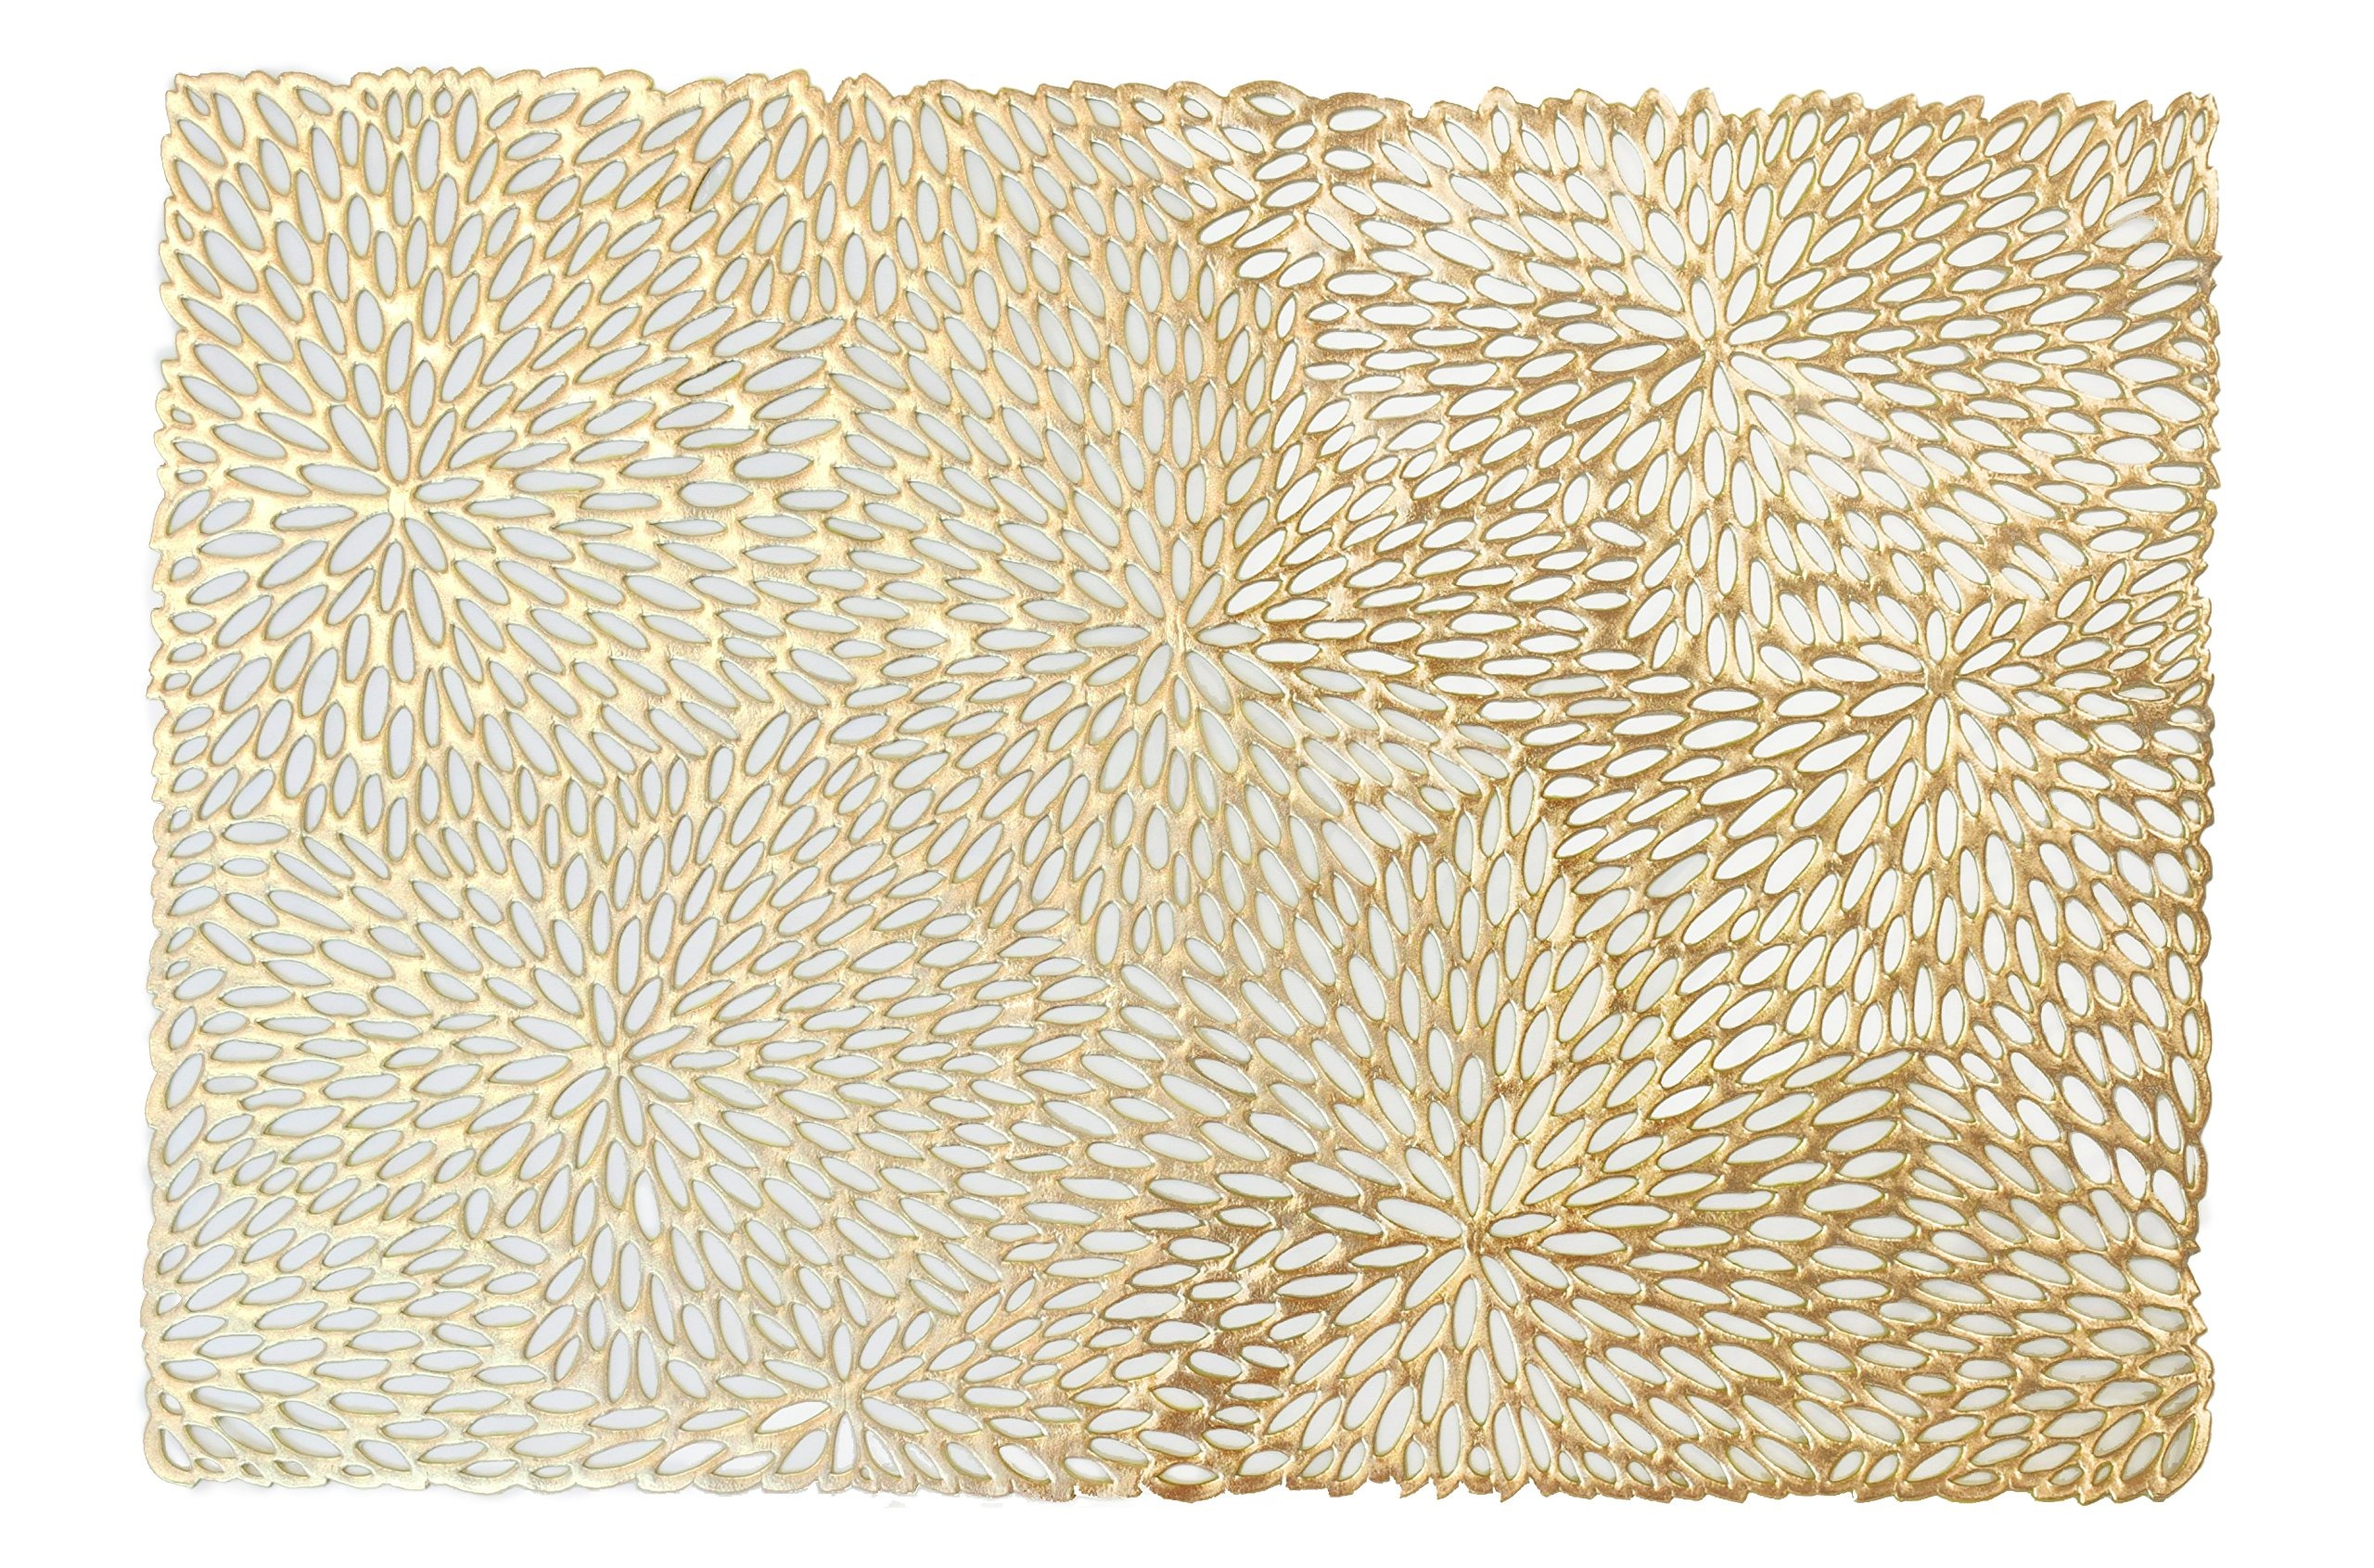 '' OCCASIONS '' Pressed Vinyl Metallic Placemats / Charger / Wedding Accent Centerpiece (40 pcs, Rectangular Gold Leaf)